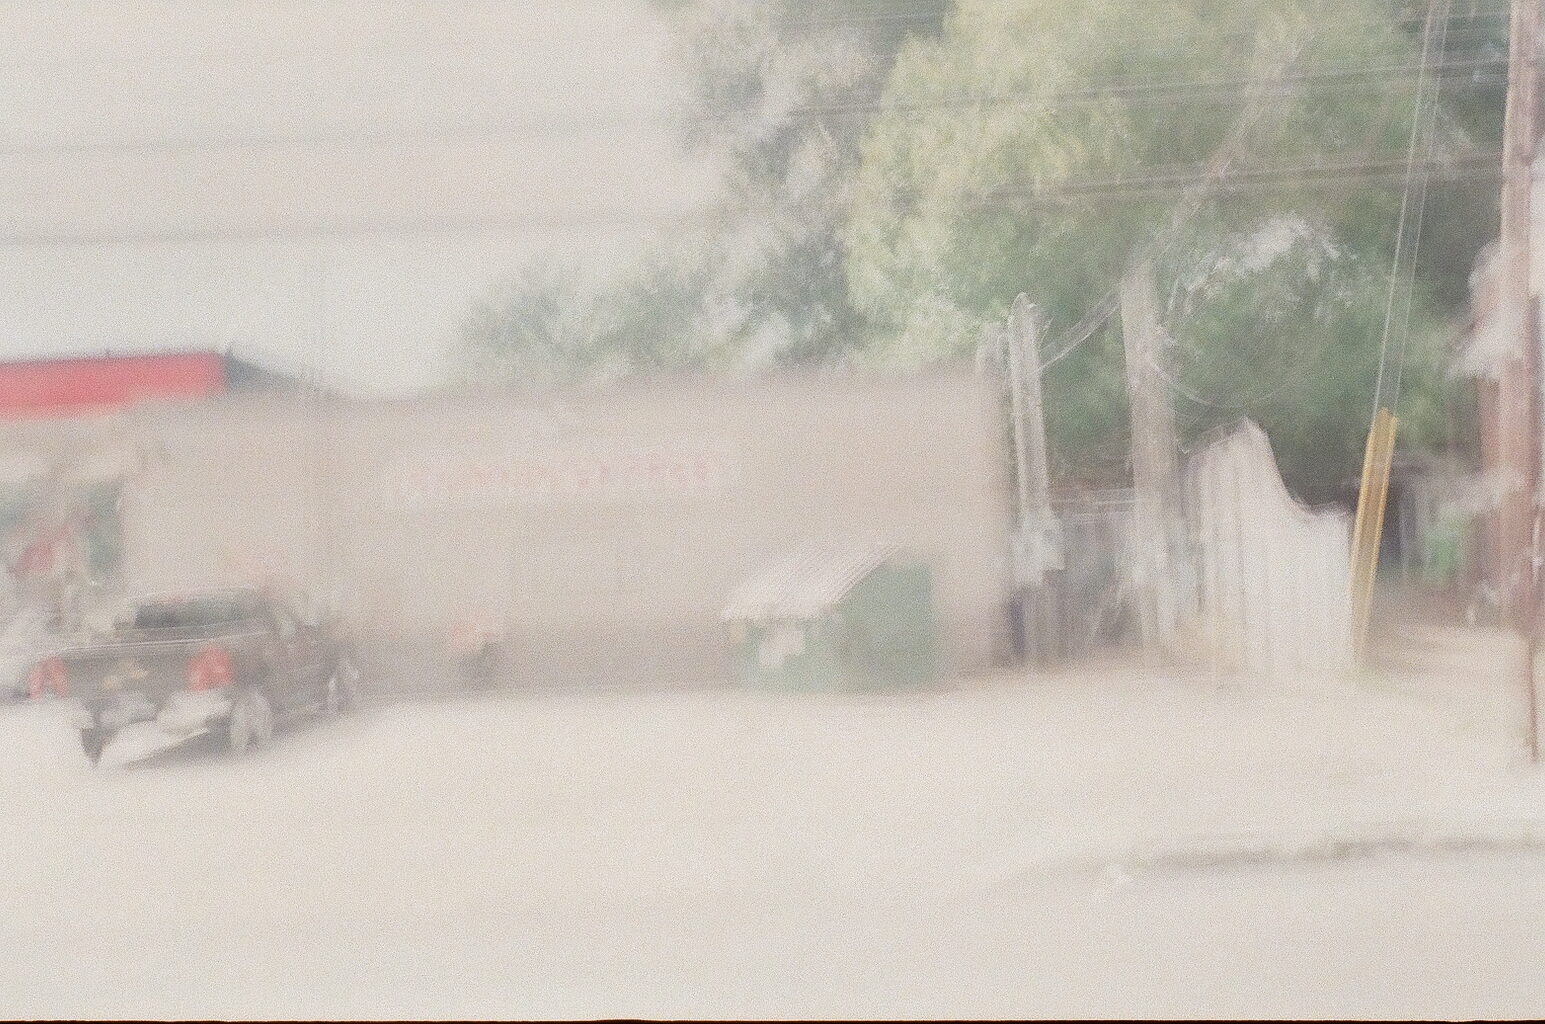 A photo of a gas station dumpster, also overexposed and blurry